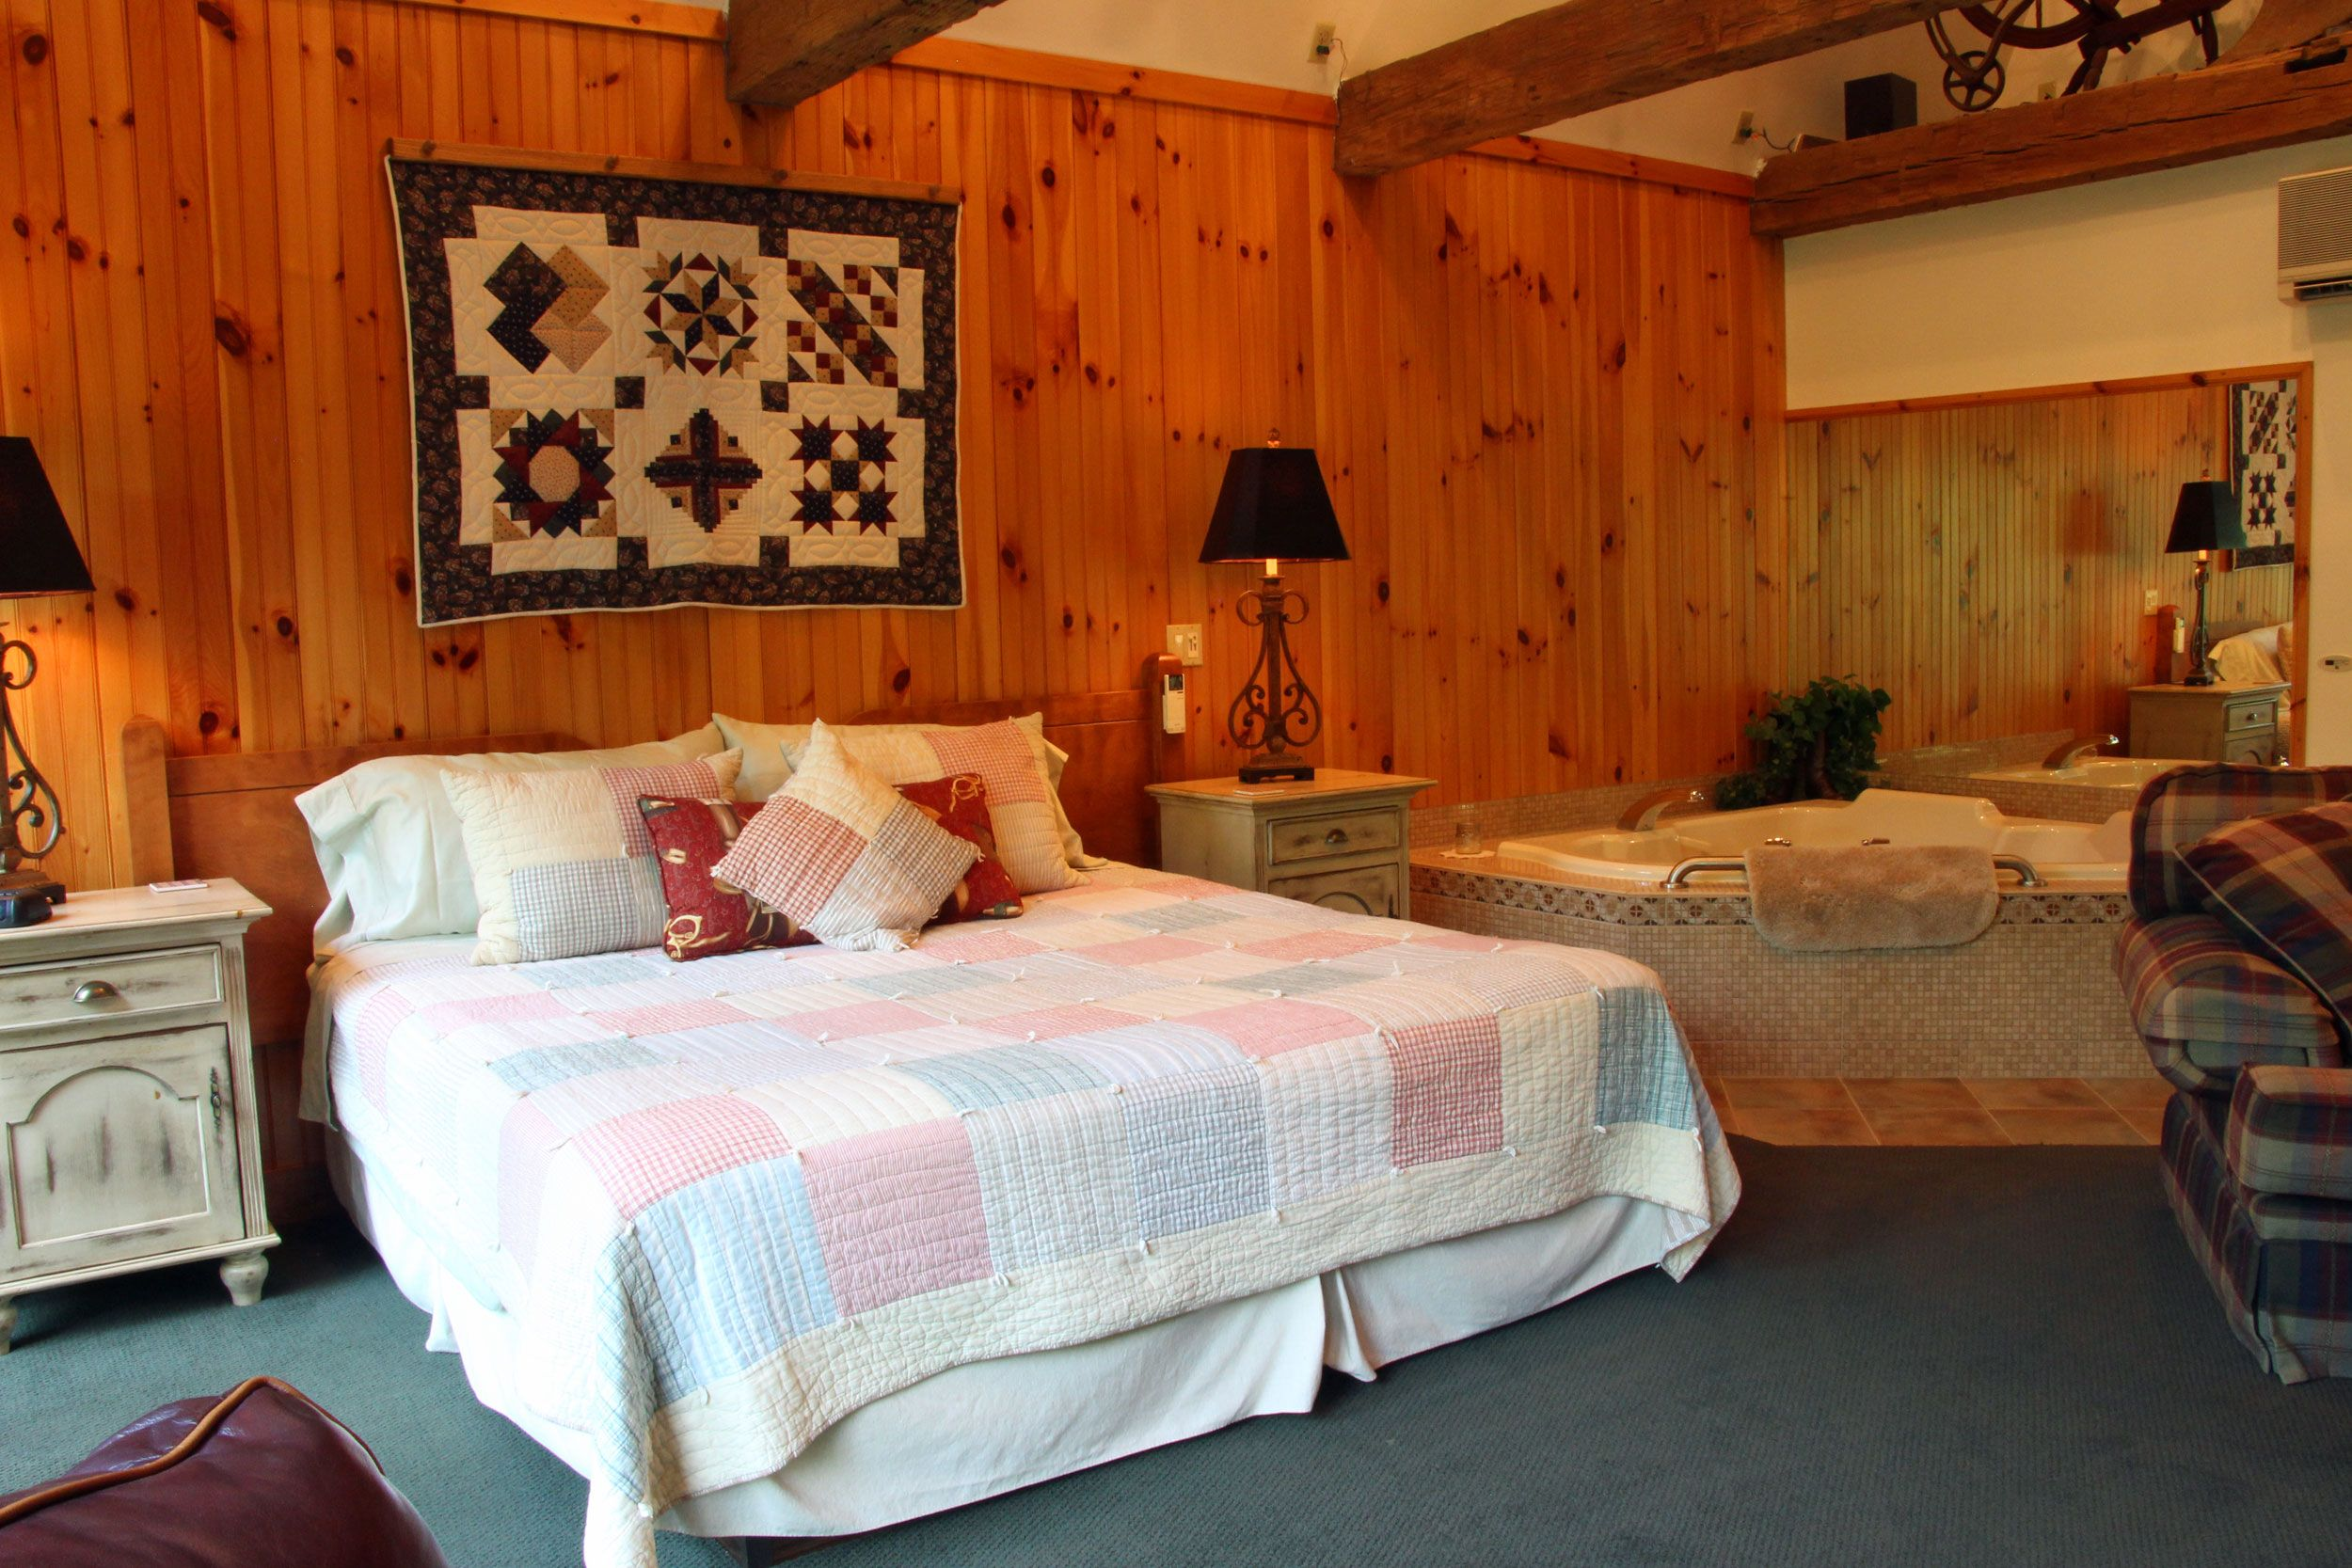 Hillside Farm Bed and Breakfast, Mt. Joy PA Bed, Bed and